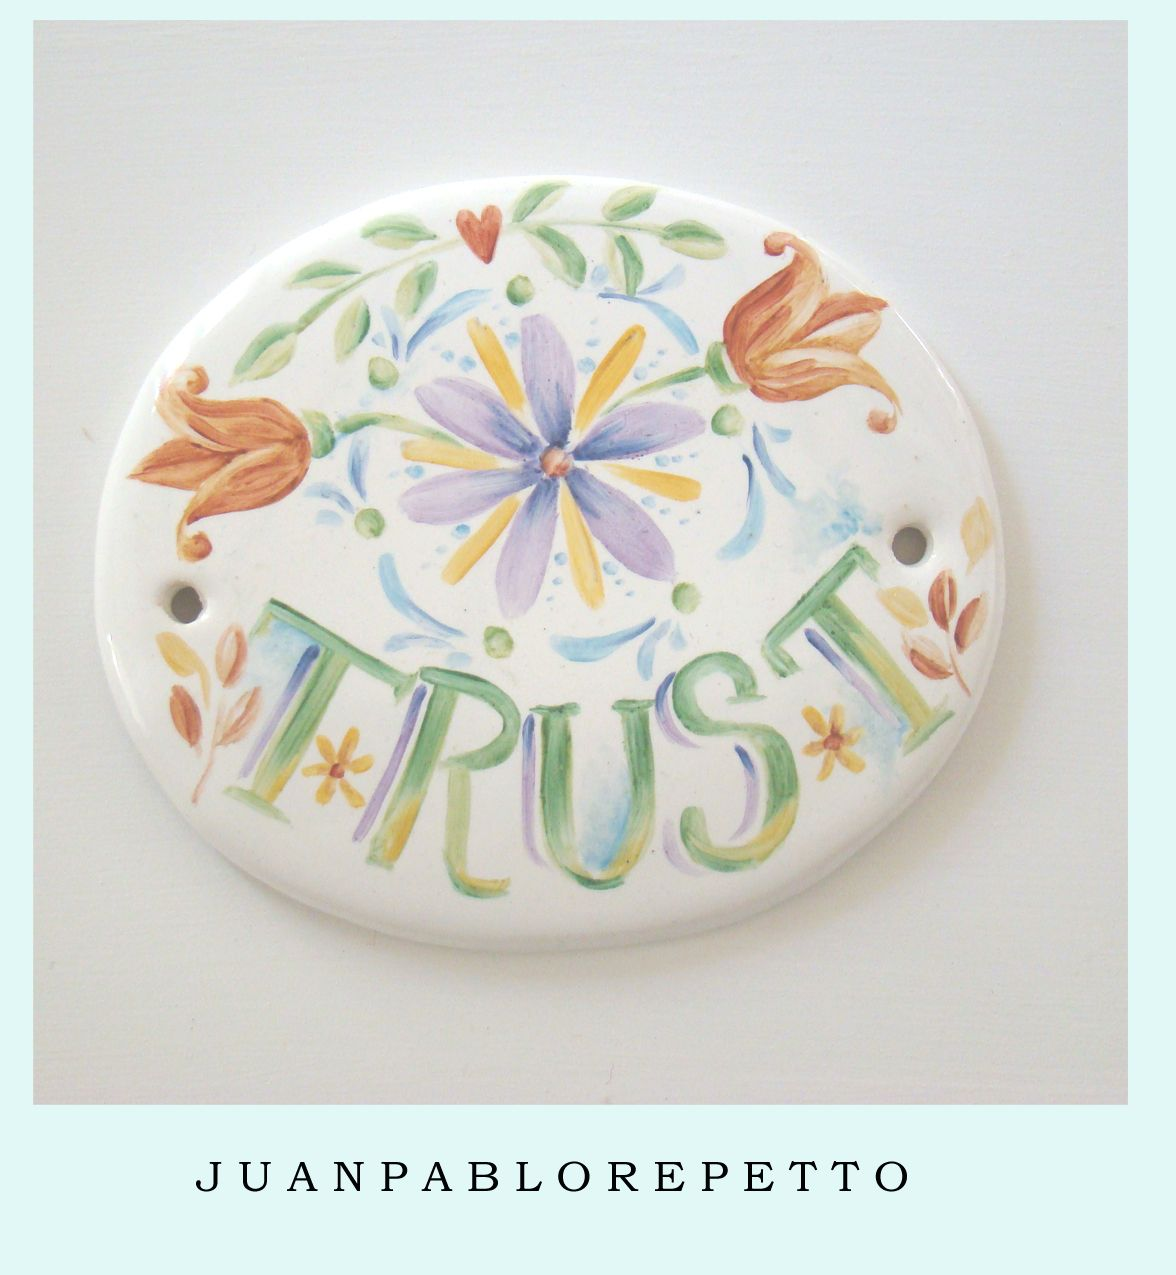 Pinturas Hippies Trust Color Pintura En Porcelana Deco Hippie Pintar